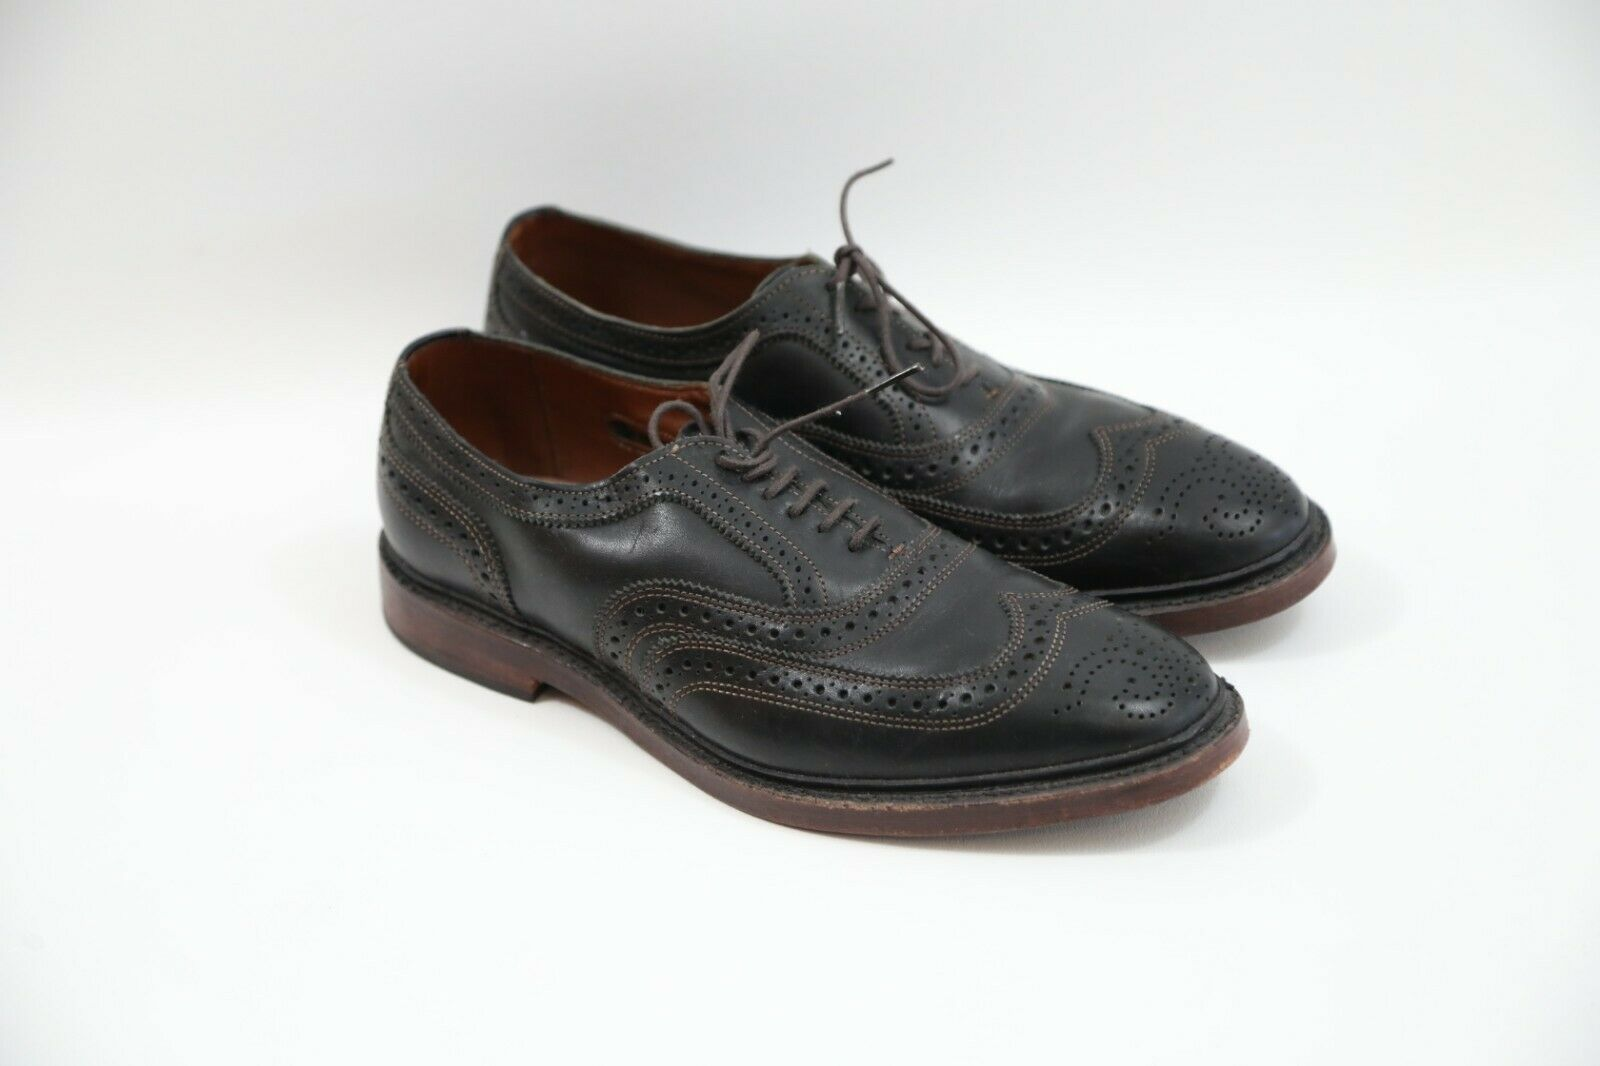 Allen Edmonds McTavish Wingtip Oxfords Size 8.5 D